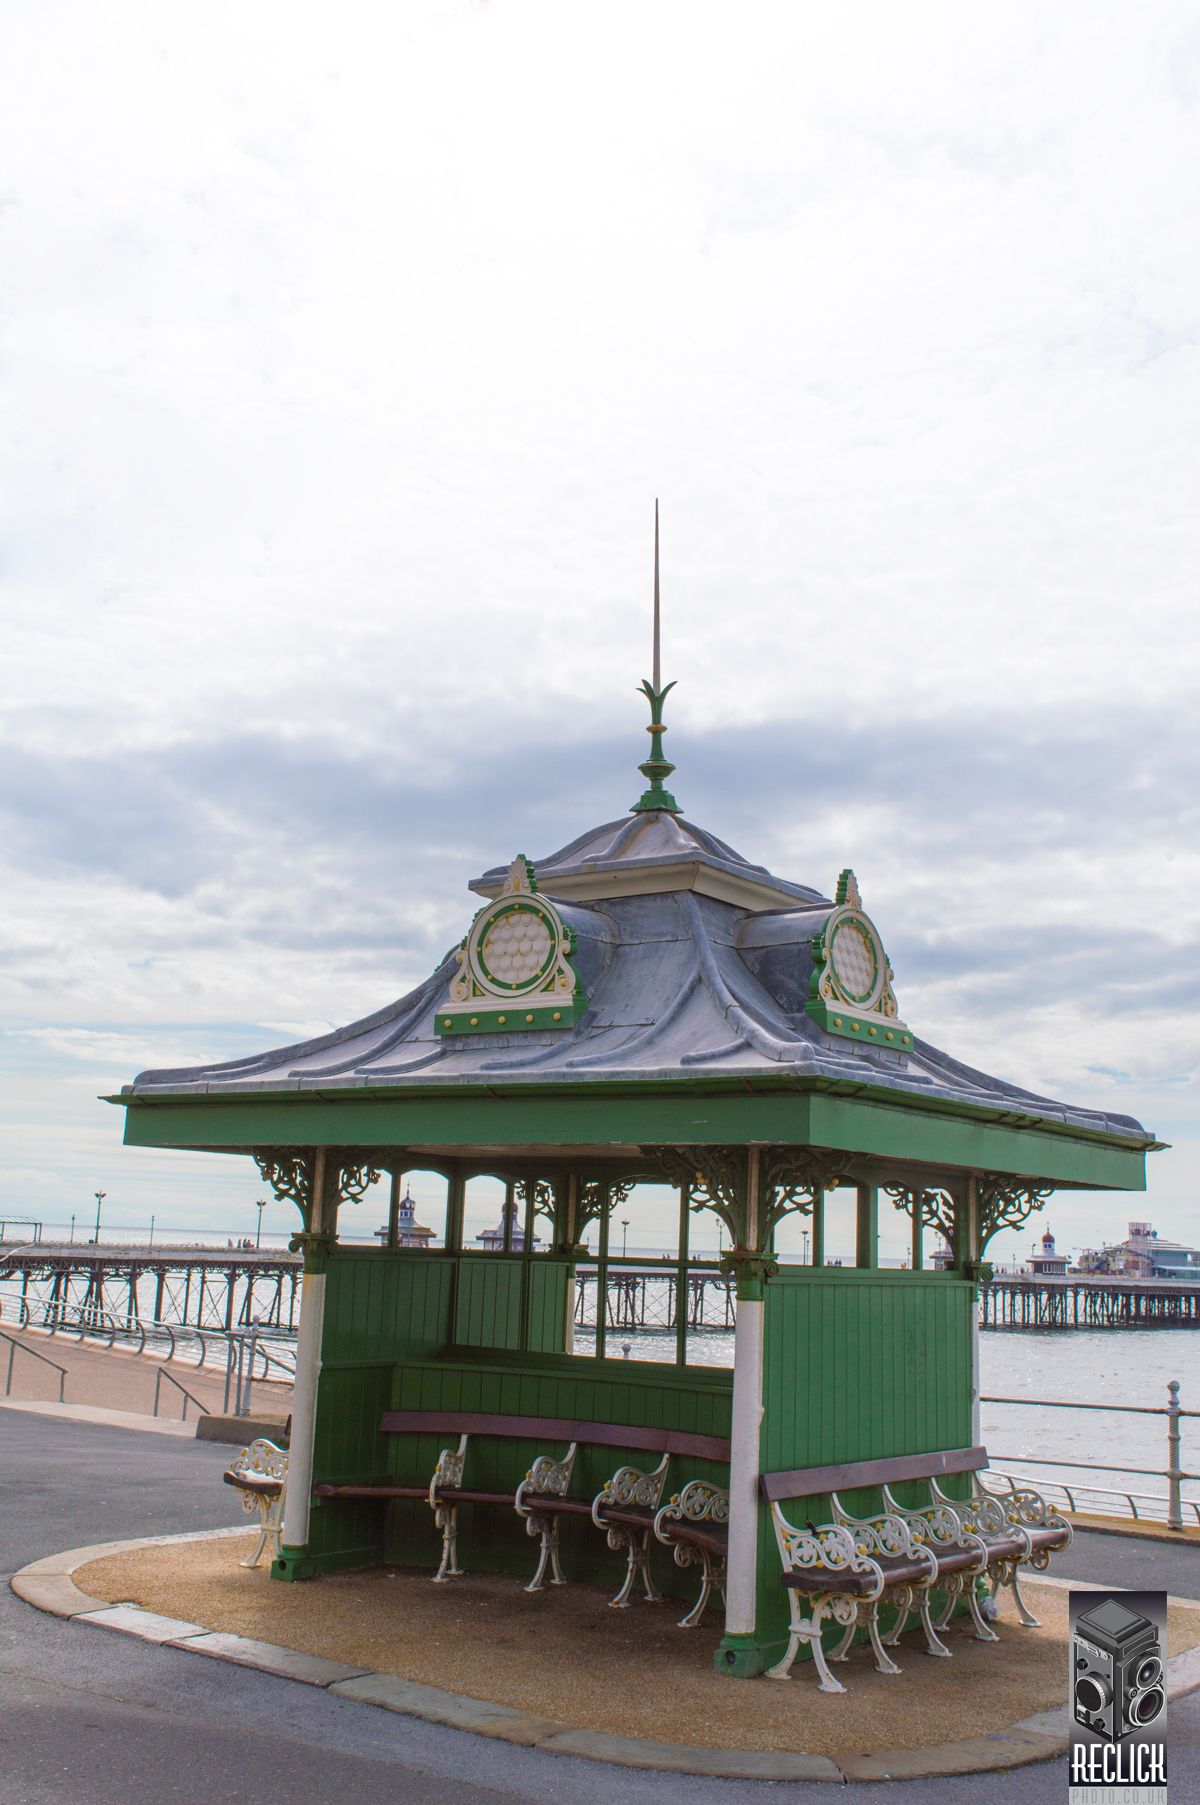 Seating, Victorian, promenade, Blackpool, Lancashire, seaside, resort